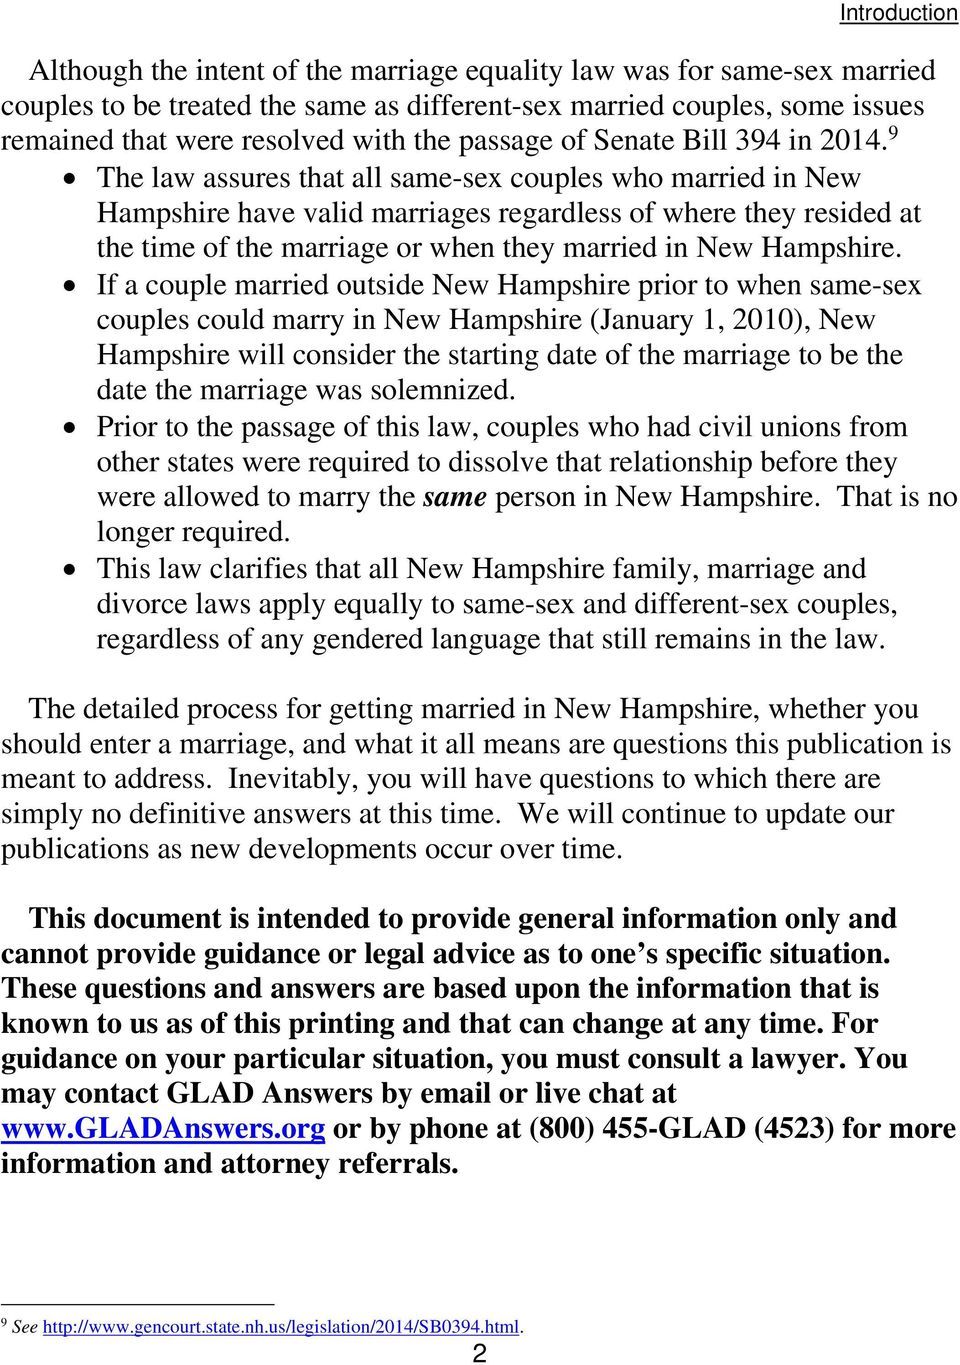 9 The law assures that all same-sex couples who married in New Hampshire have valid marriages regardless of where they resided at the time of the marriage or when they married in New Hampshire.